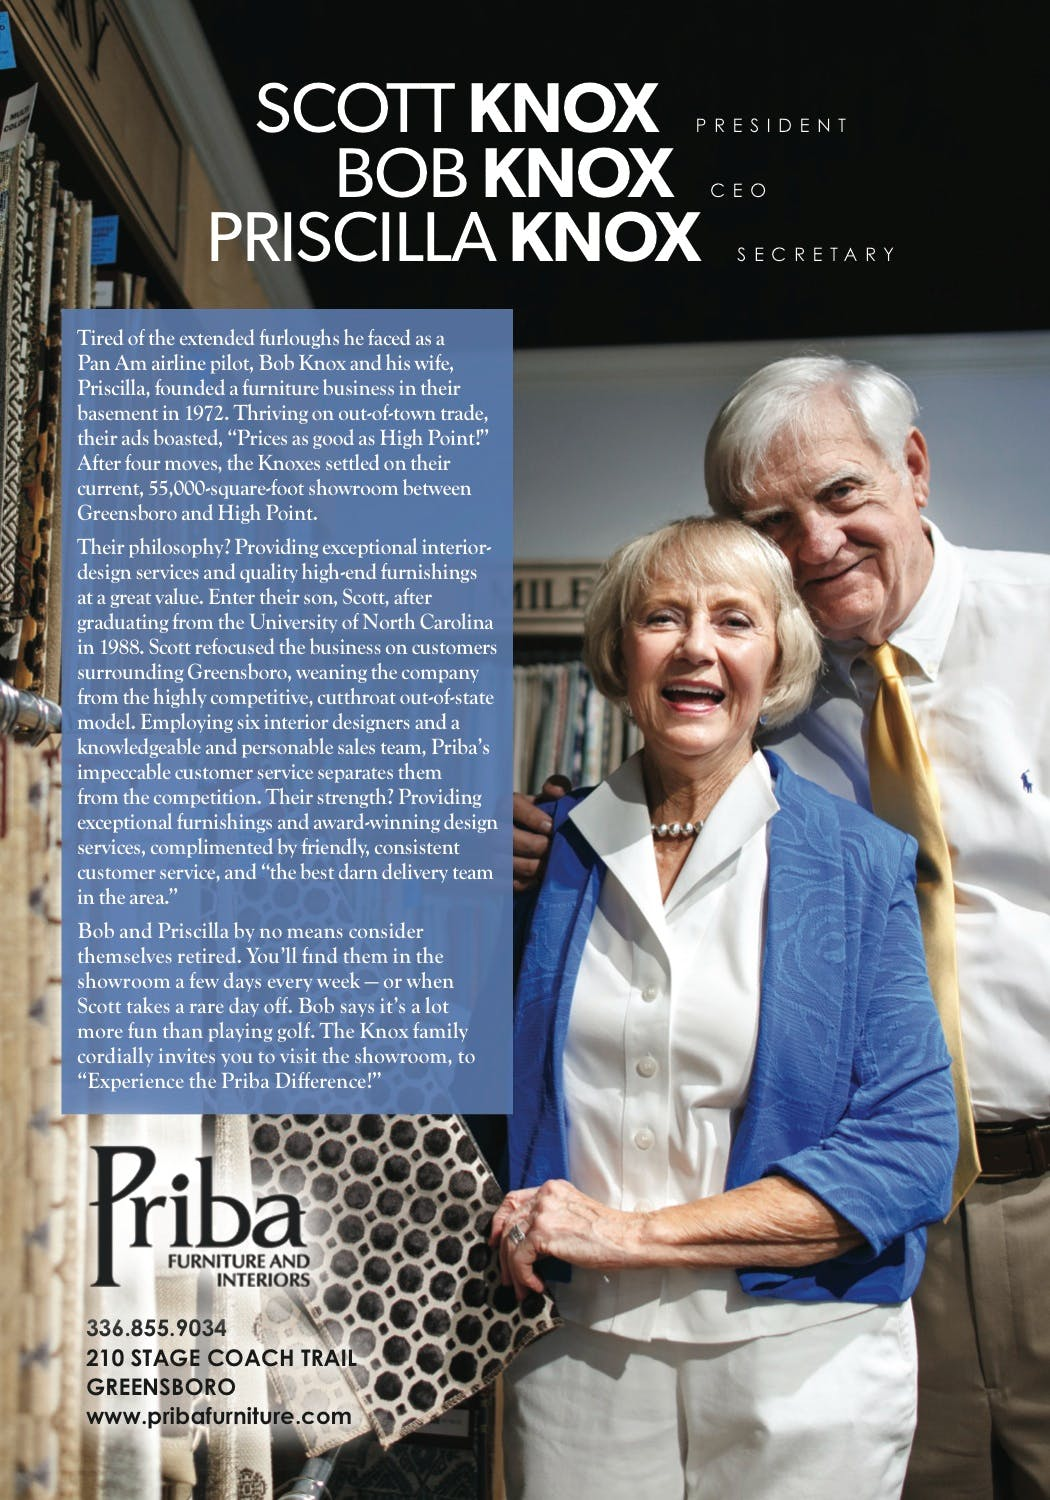 Awesome About Priba Furniture U0026 Interiors